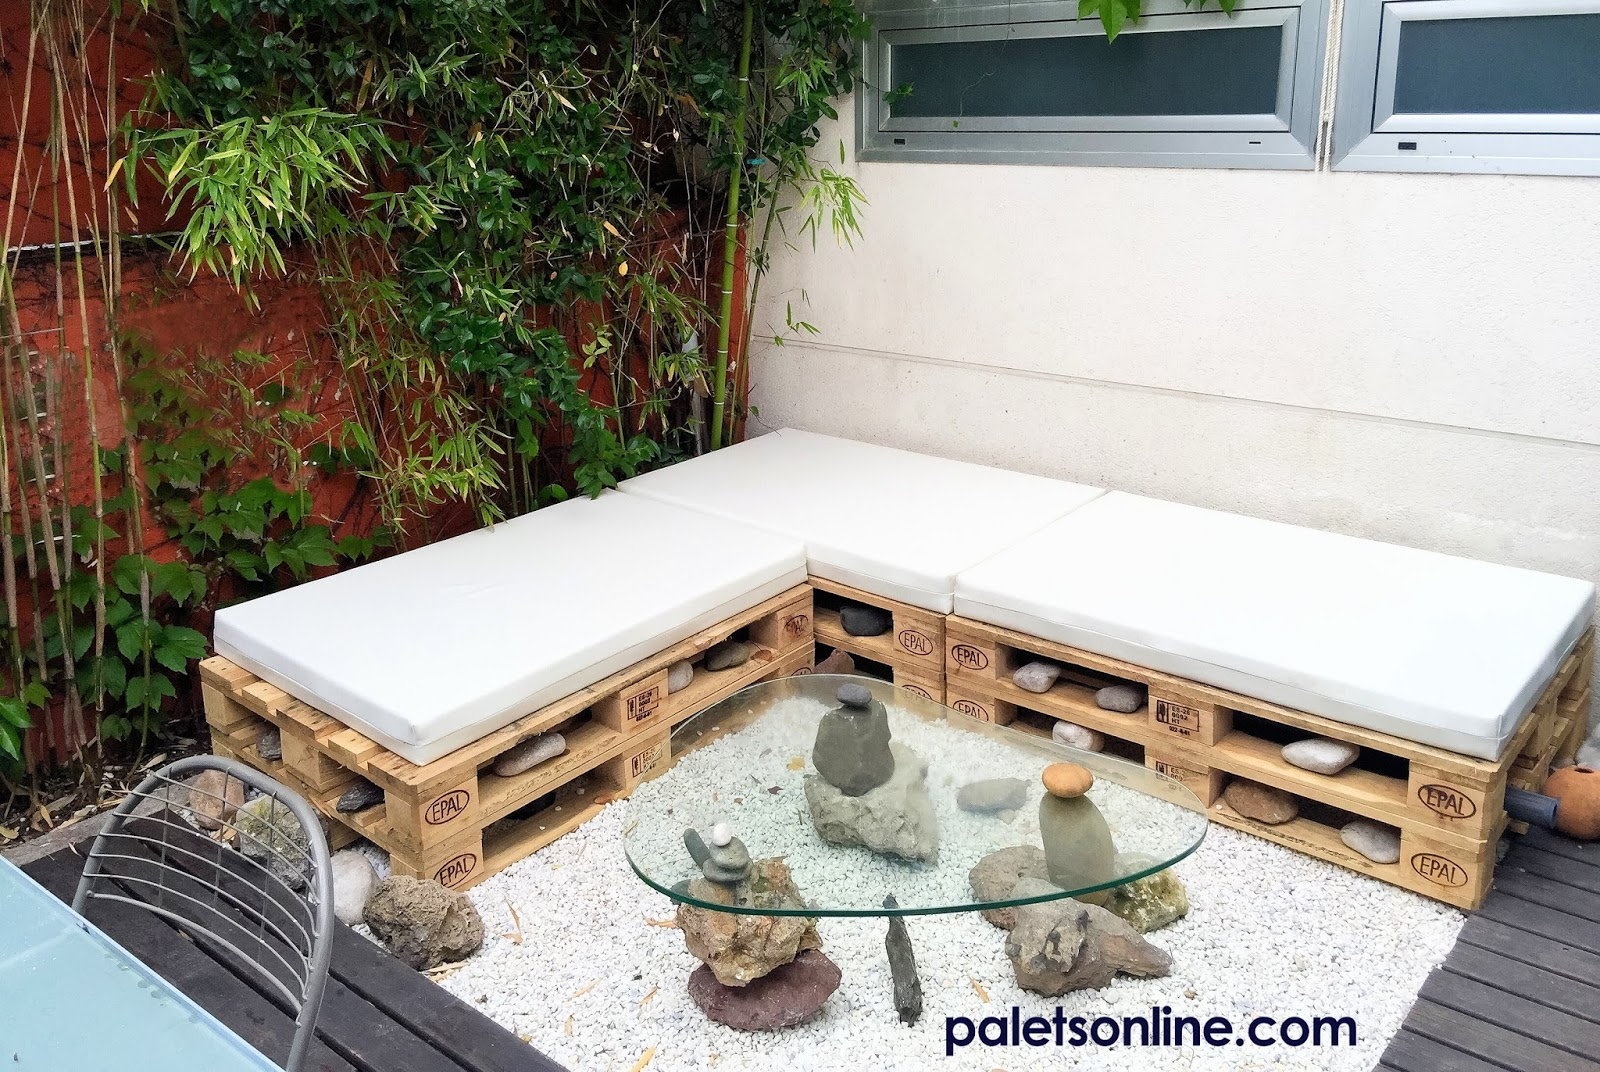 Muebles con palets julio 2016 - Chill out jardin ...